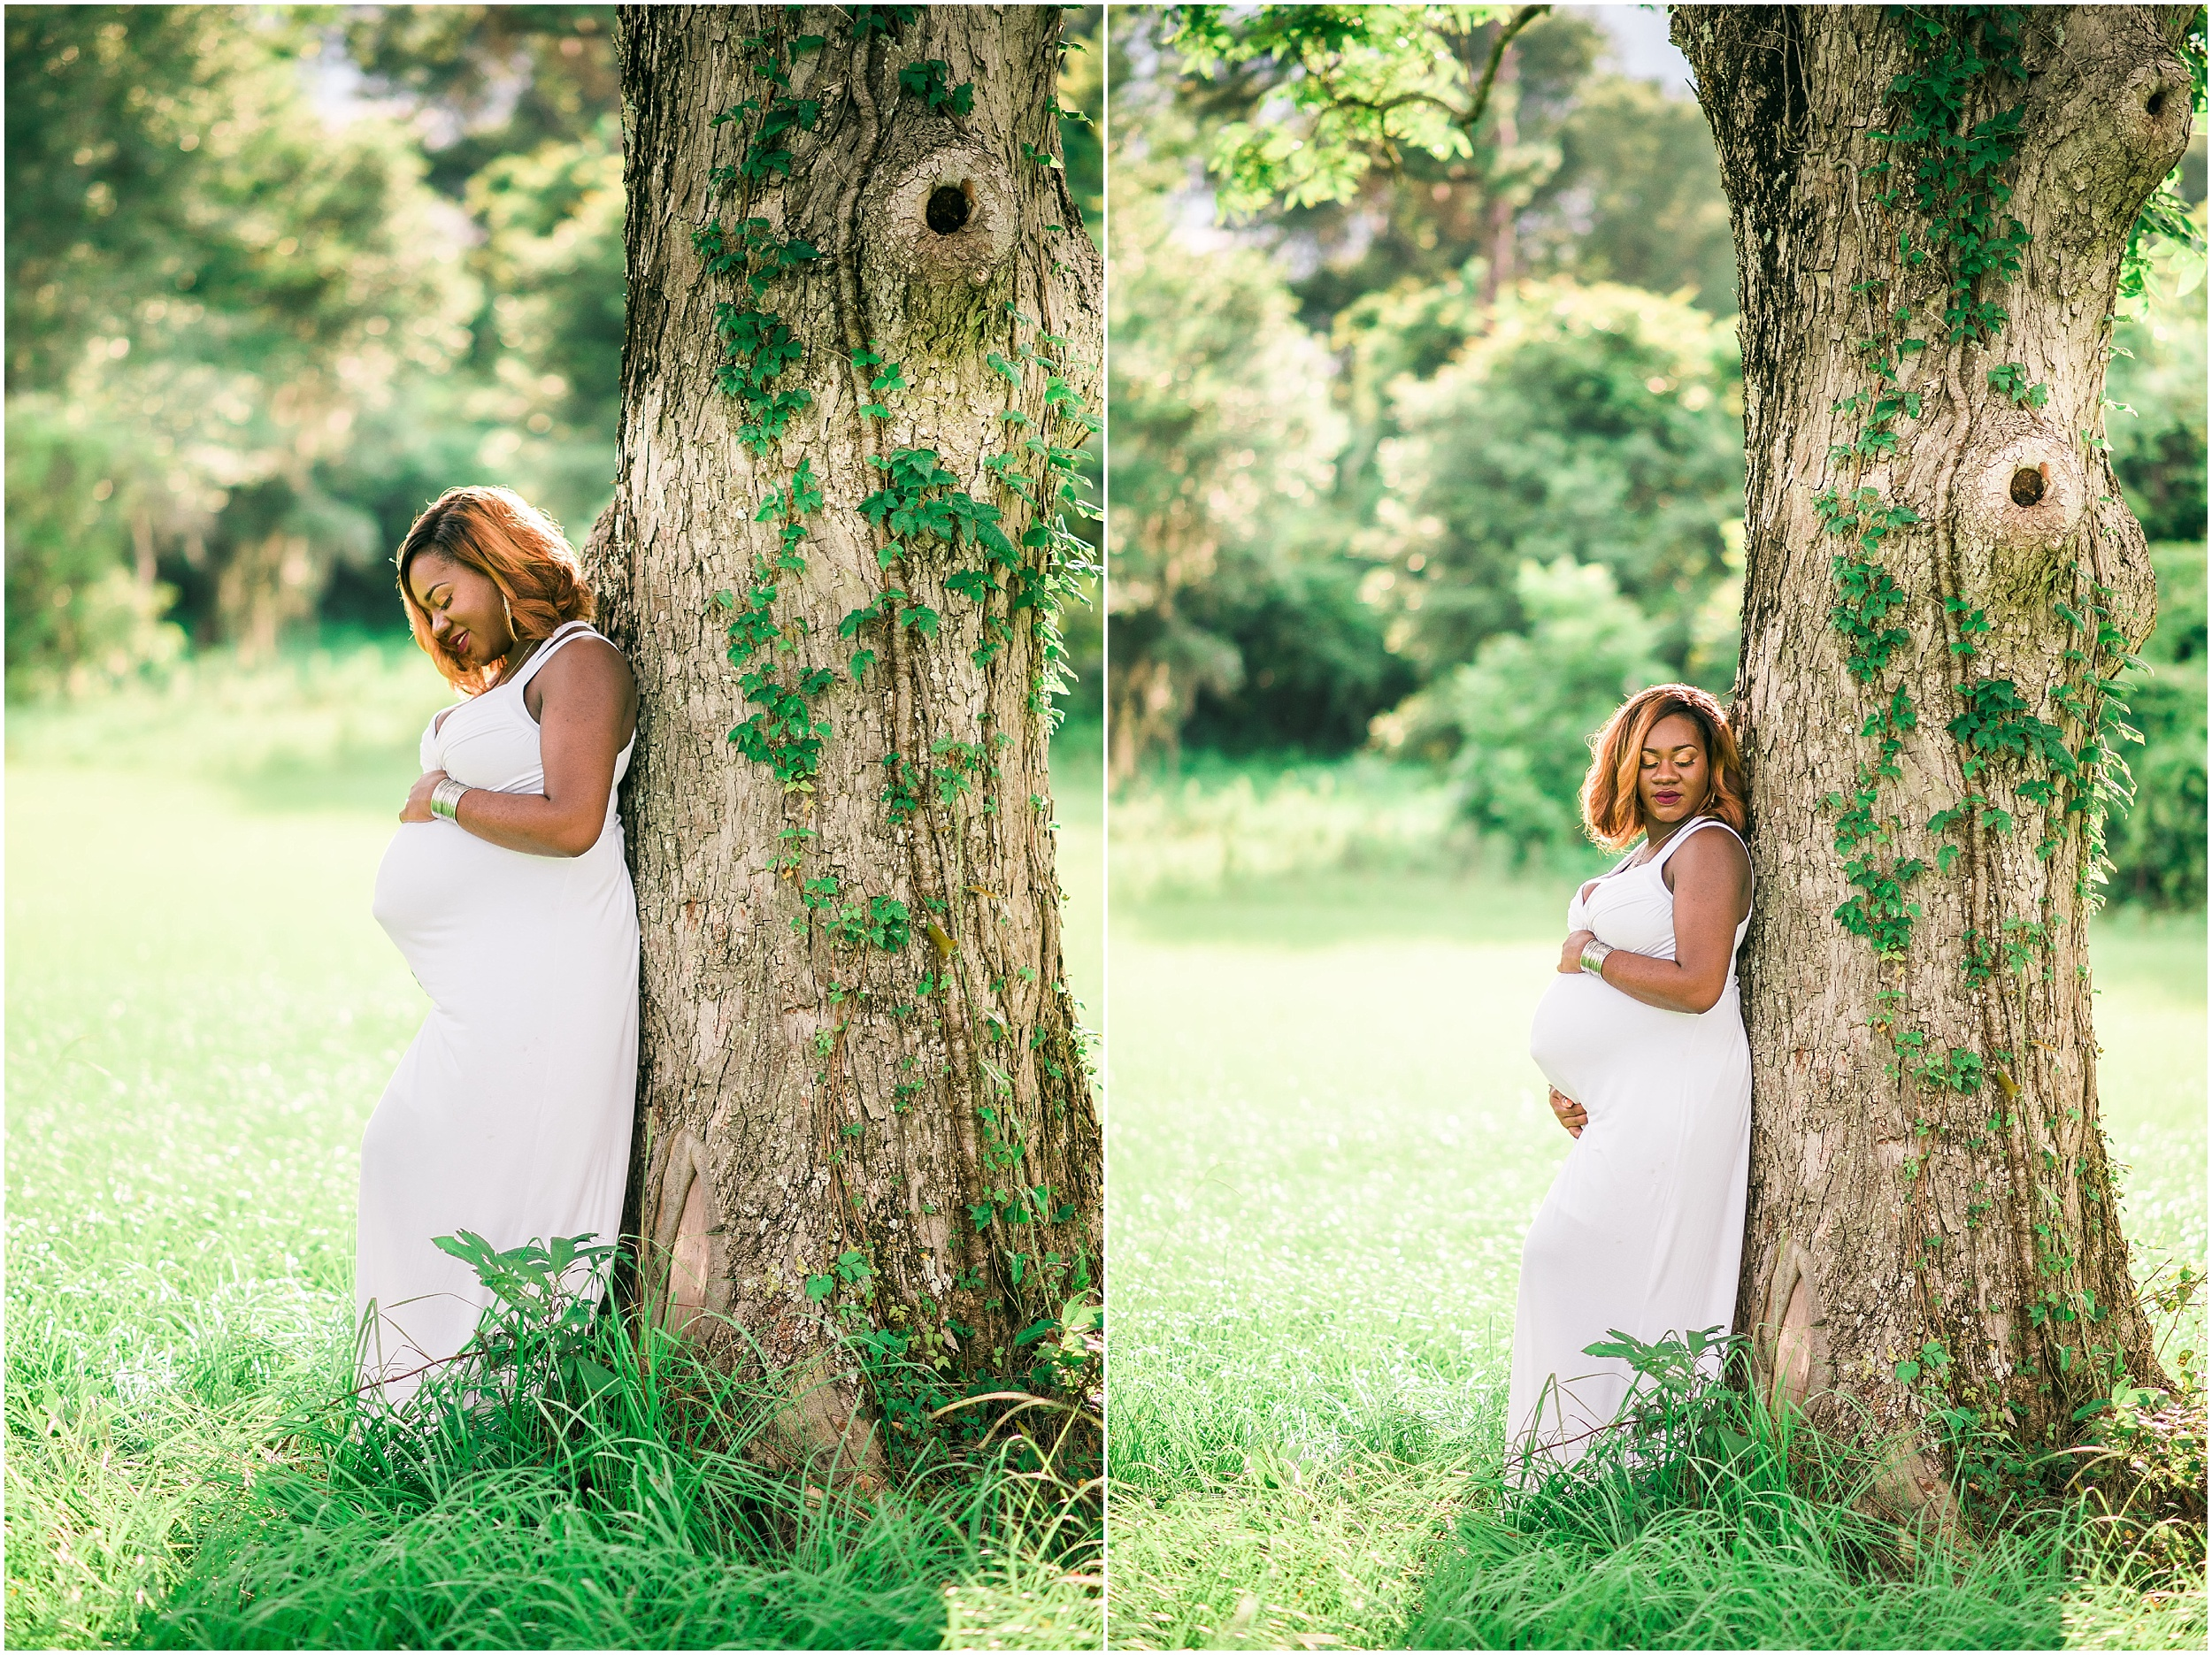 Maternity Session in Tallahassee, Florida_0011.jpg